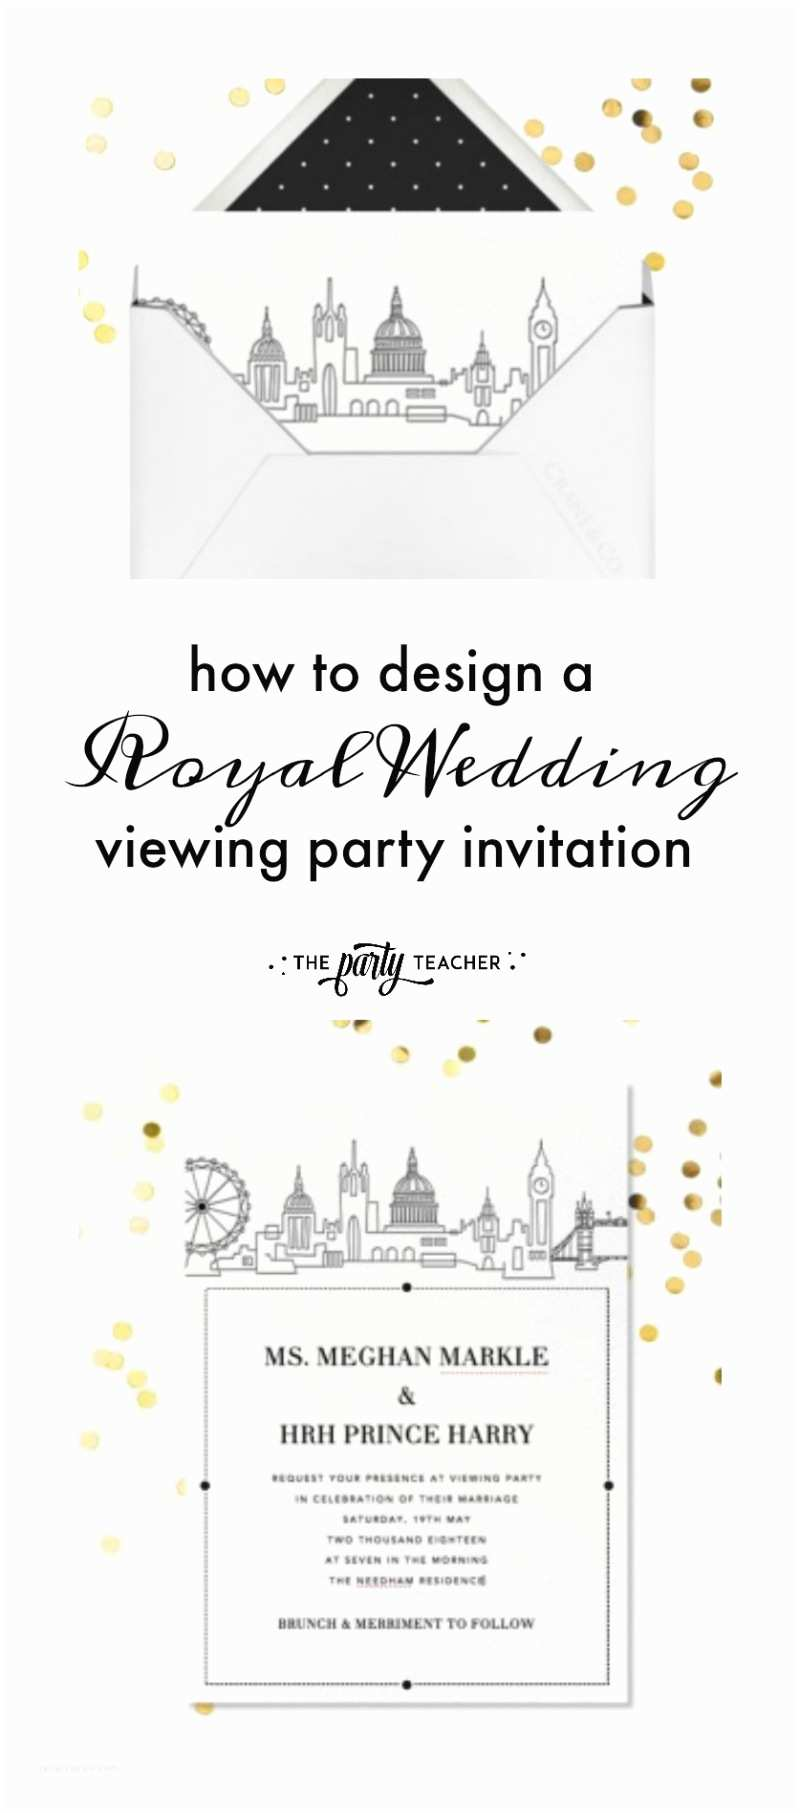 Paperless Post Free Wedding Invitations How to Use Paperless Post for Email Party Invitations